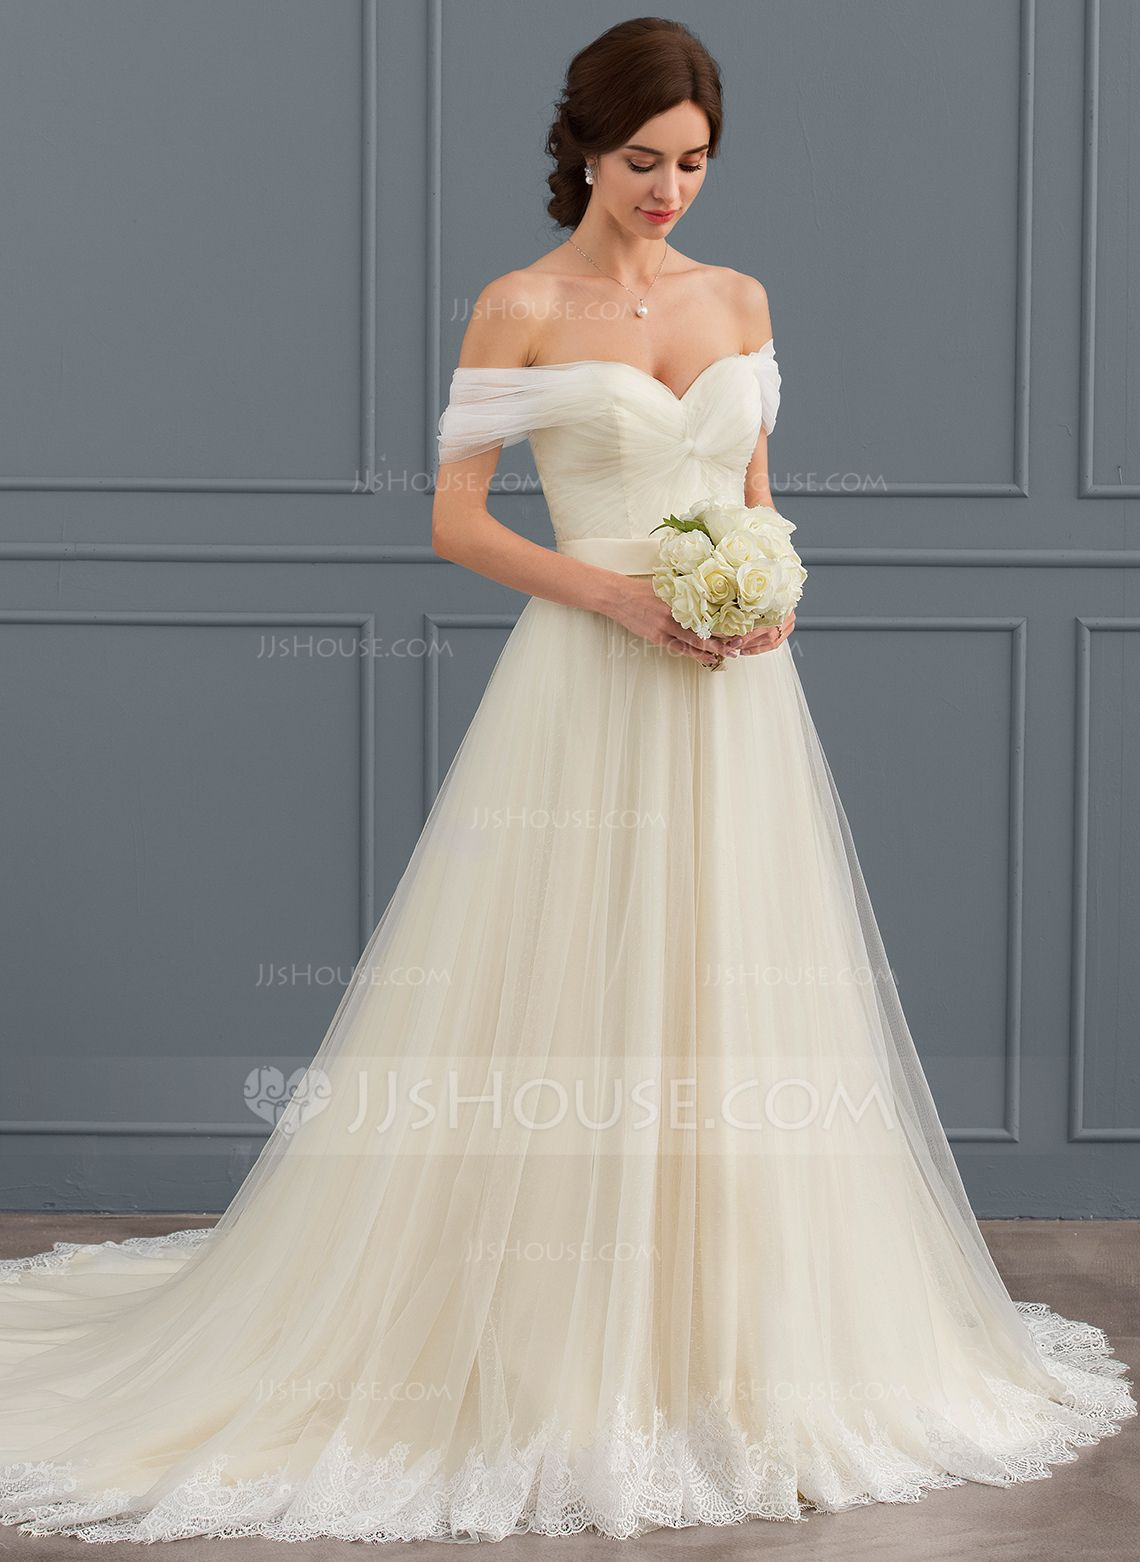 ac3a839d257a3 20+ Jjshouse Wedding Dresses - Best Shapewear for Wedding Dress Check more  at http